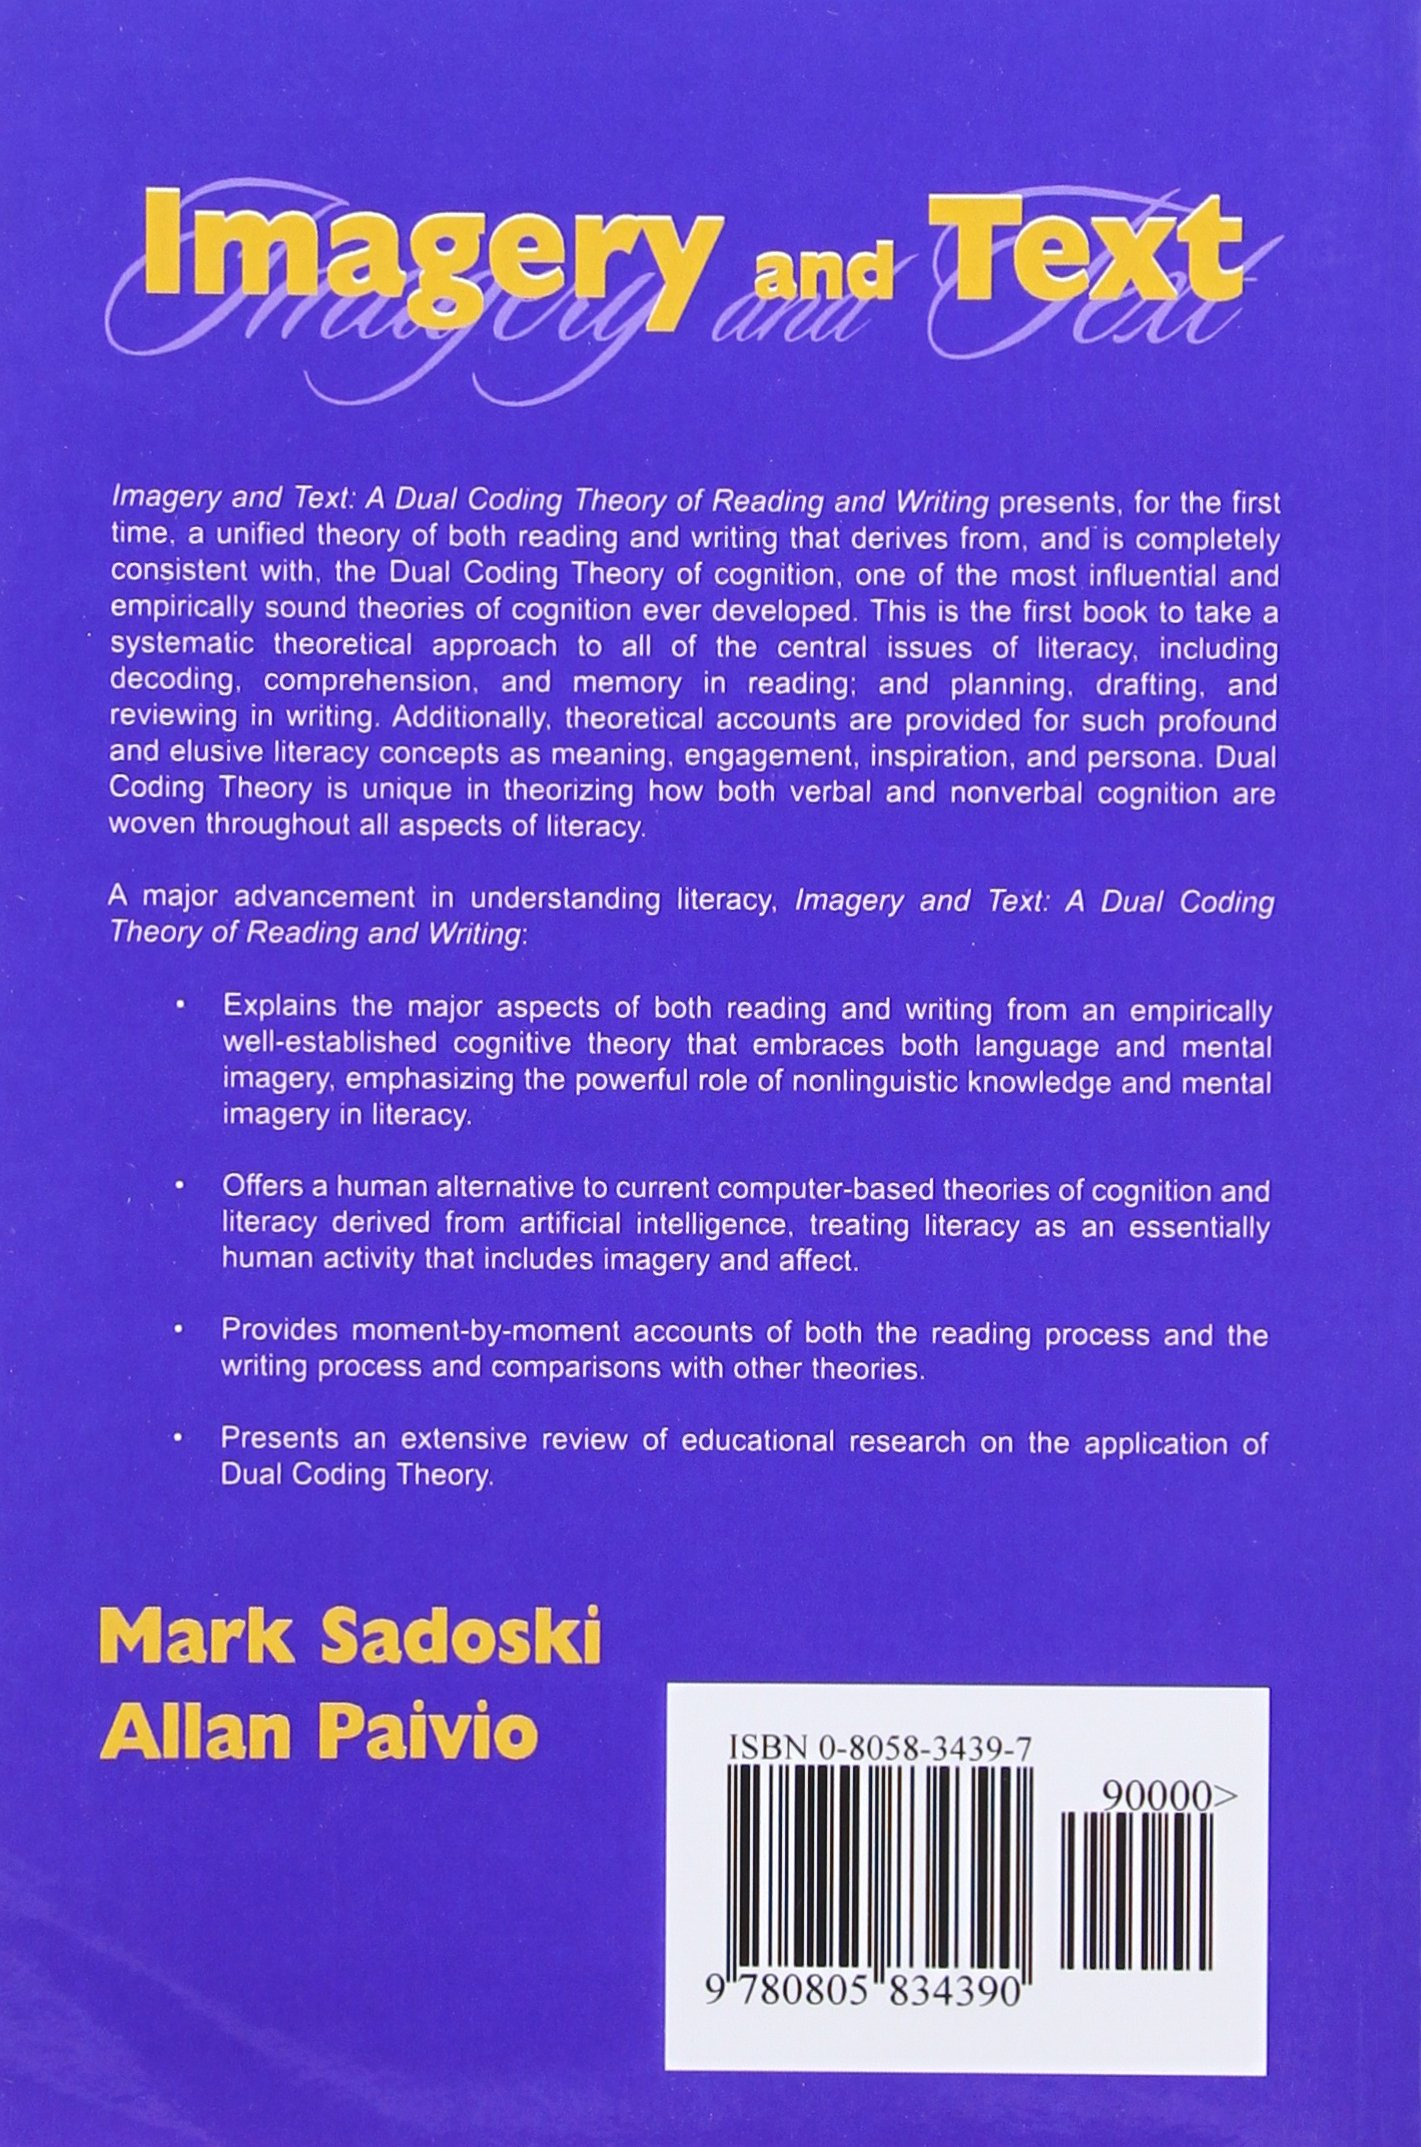 Guide Imagery and Text: A Dual Coding Theory of Reading and